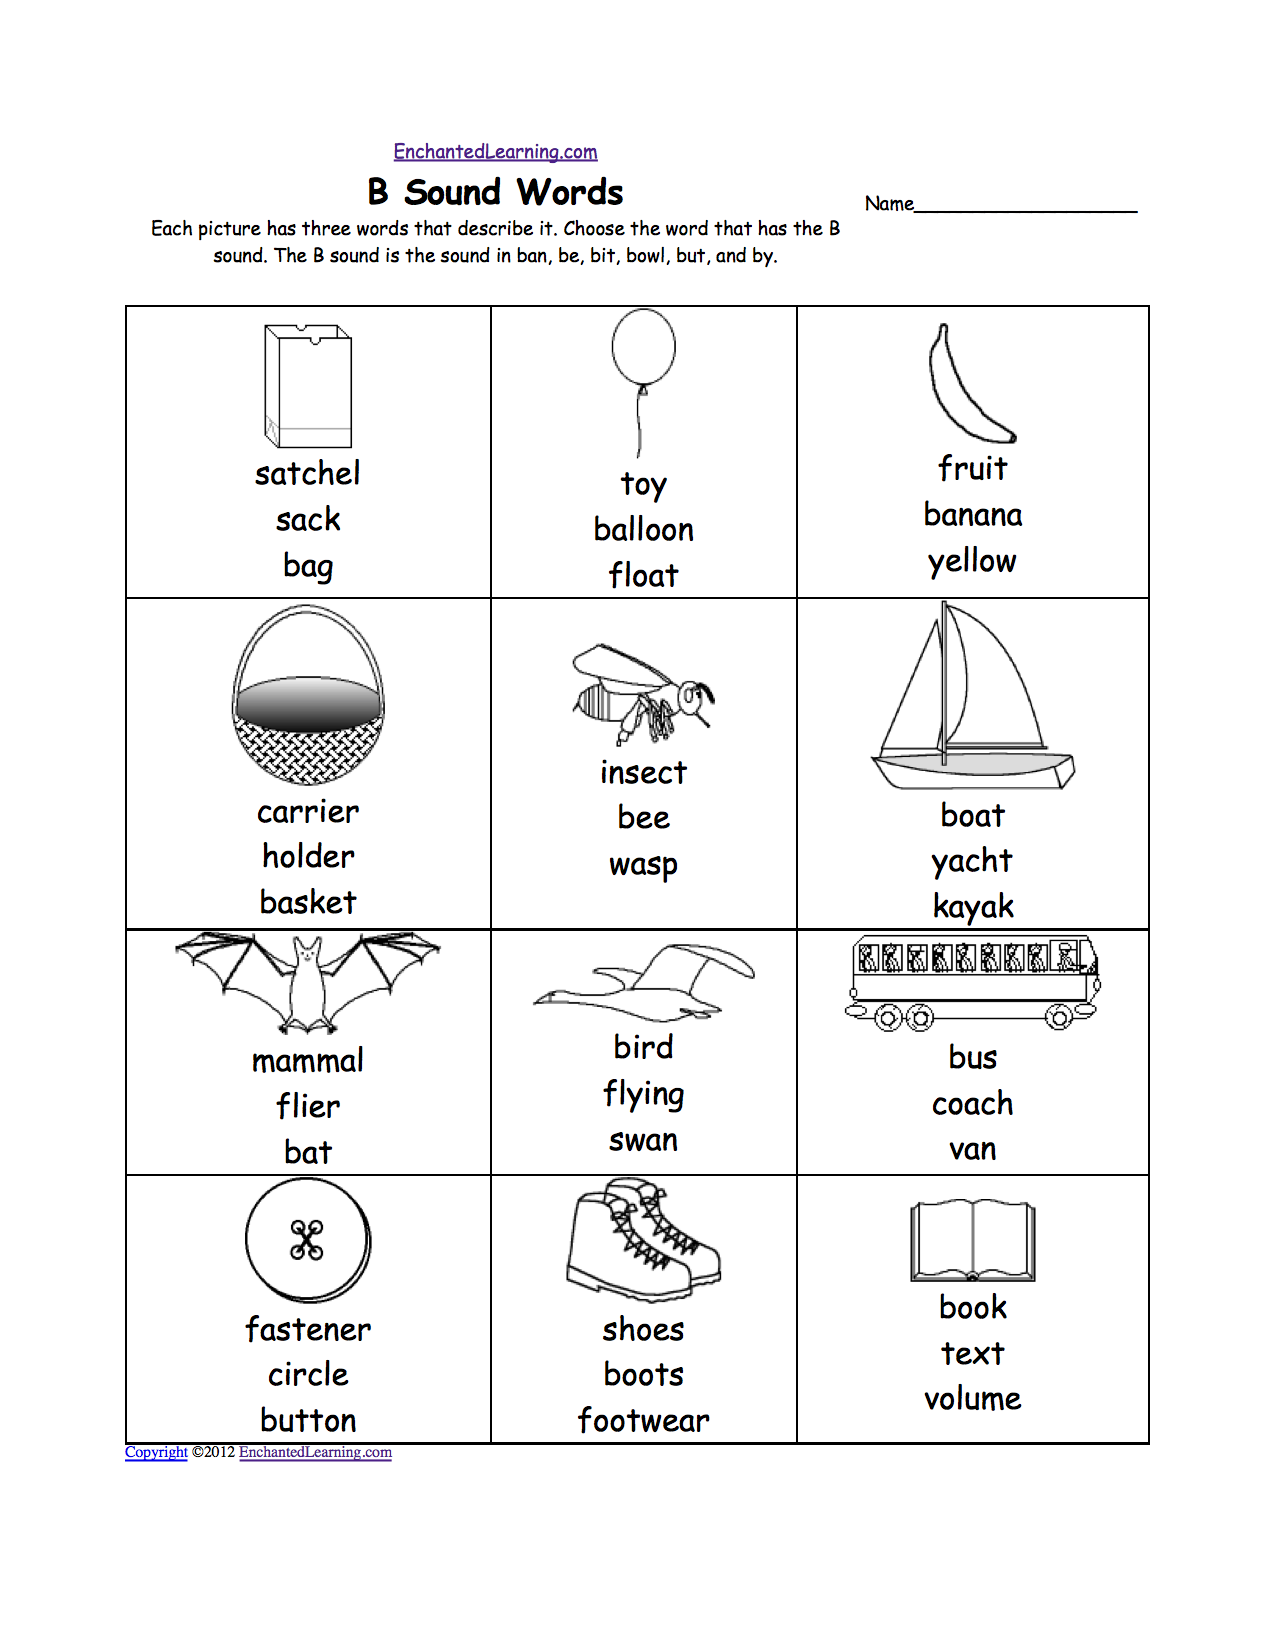 Weirdmailus  Marvelous Phonics Worksheets Multiple Choice Worksheets To Print  With Handsome Quotbquot Sound Phonics Worksheet Multiple Choice Each Picture Has Three Words That Describe It Choose The Word That Has A Quotbquot Sound The Quotbquot Sound Is The Sound  With Comely Types Of Soil Worksheets Also Grade  English Worksheets Free In Addition Conversion Of Units Worksheet And Timeline Practice Worksheets As Well As Simplifying Rational Algebraic Expressions Worksheets Additionally Order Of Operations Addition And Subtraction Worksheets From Enchantedlearningcom With Weirdmailus  Handsome Phonics Worksheets Multiple Choice Worksheets To Print  With Comely Quotbquot Sound Phonics Worksheet Multiple Choice Each Picture Has Three Words That Describe It Choose The Word That Has A Quotbquot Sound The Quotbquot Sound Is The Sound  And Marvelous Types Of Soil Worksheets Also Grade  English Worksheets Free In Addition Conversion Of Units Worksheet From Enchantedlearningcom